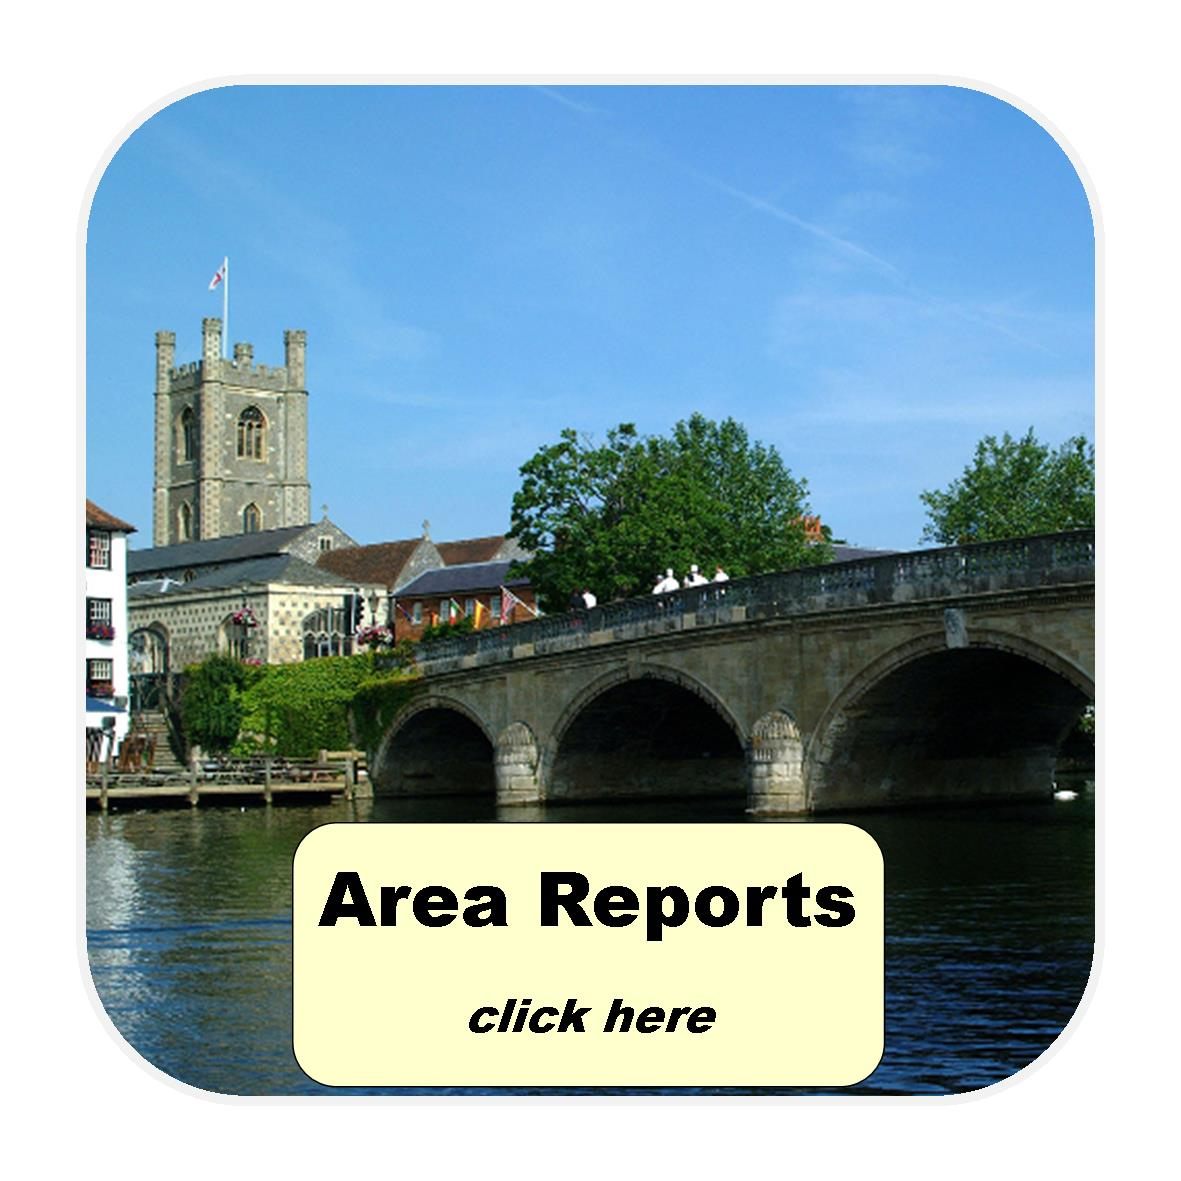 South Oxfordshire, Area Reports